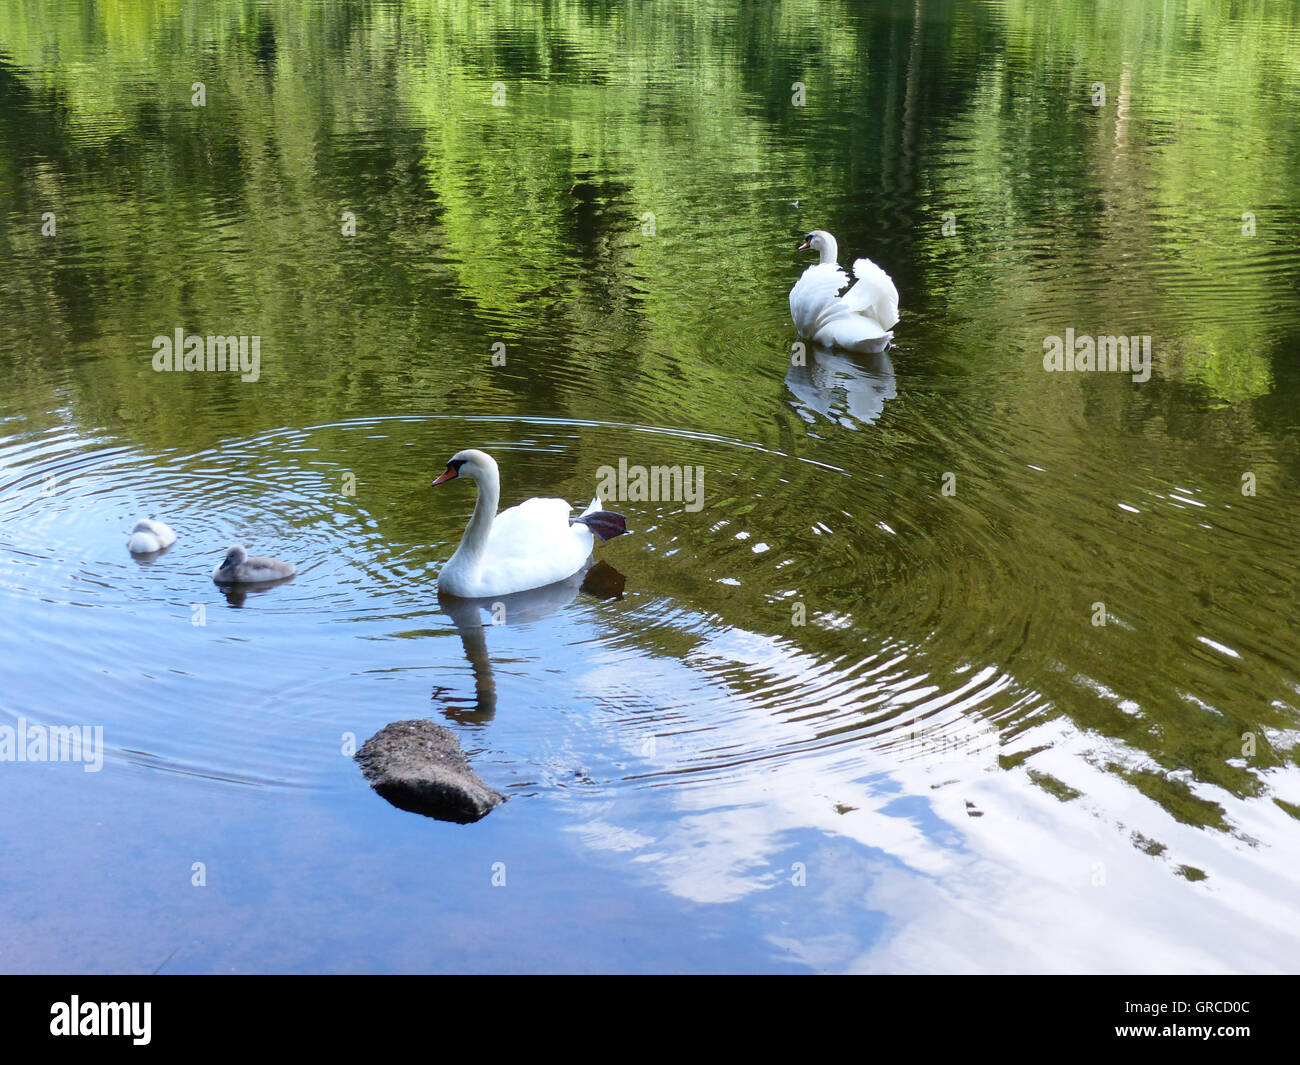 Swan Familiy With Two Swan Chicks Which Are Two Weeks Old - Stock Image